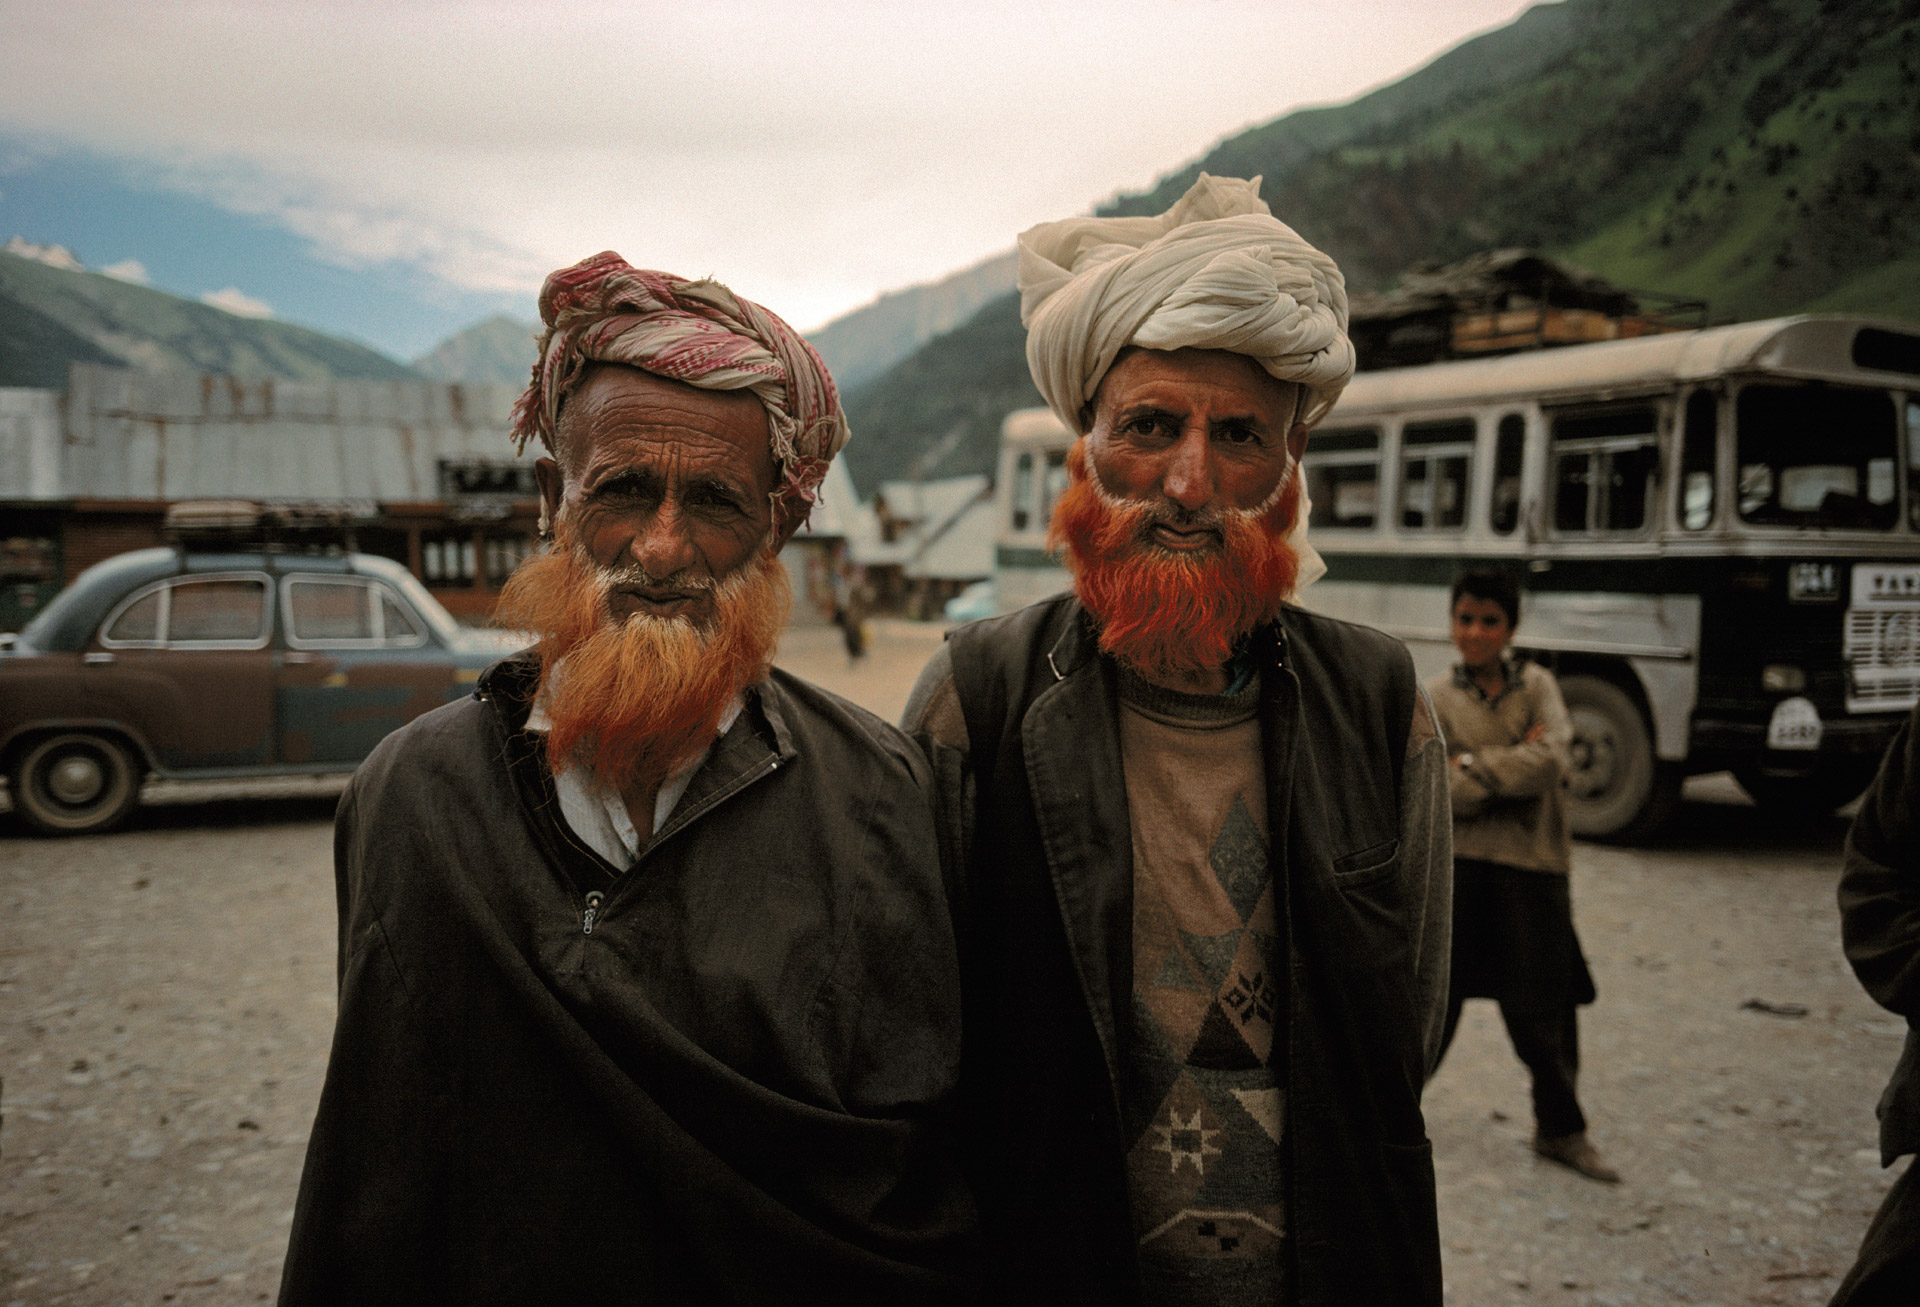 Two Muslim men with their beards dyed in orange color waiting at the bus station in Sona Marg in Kashmir